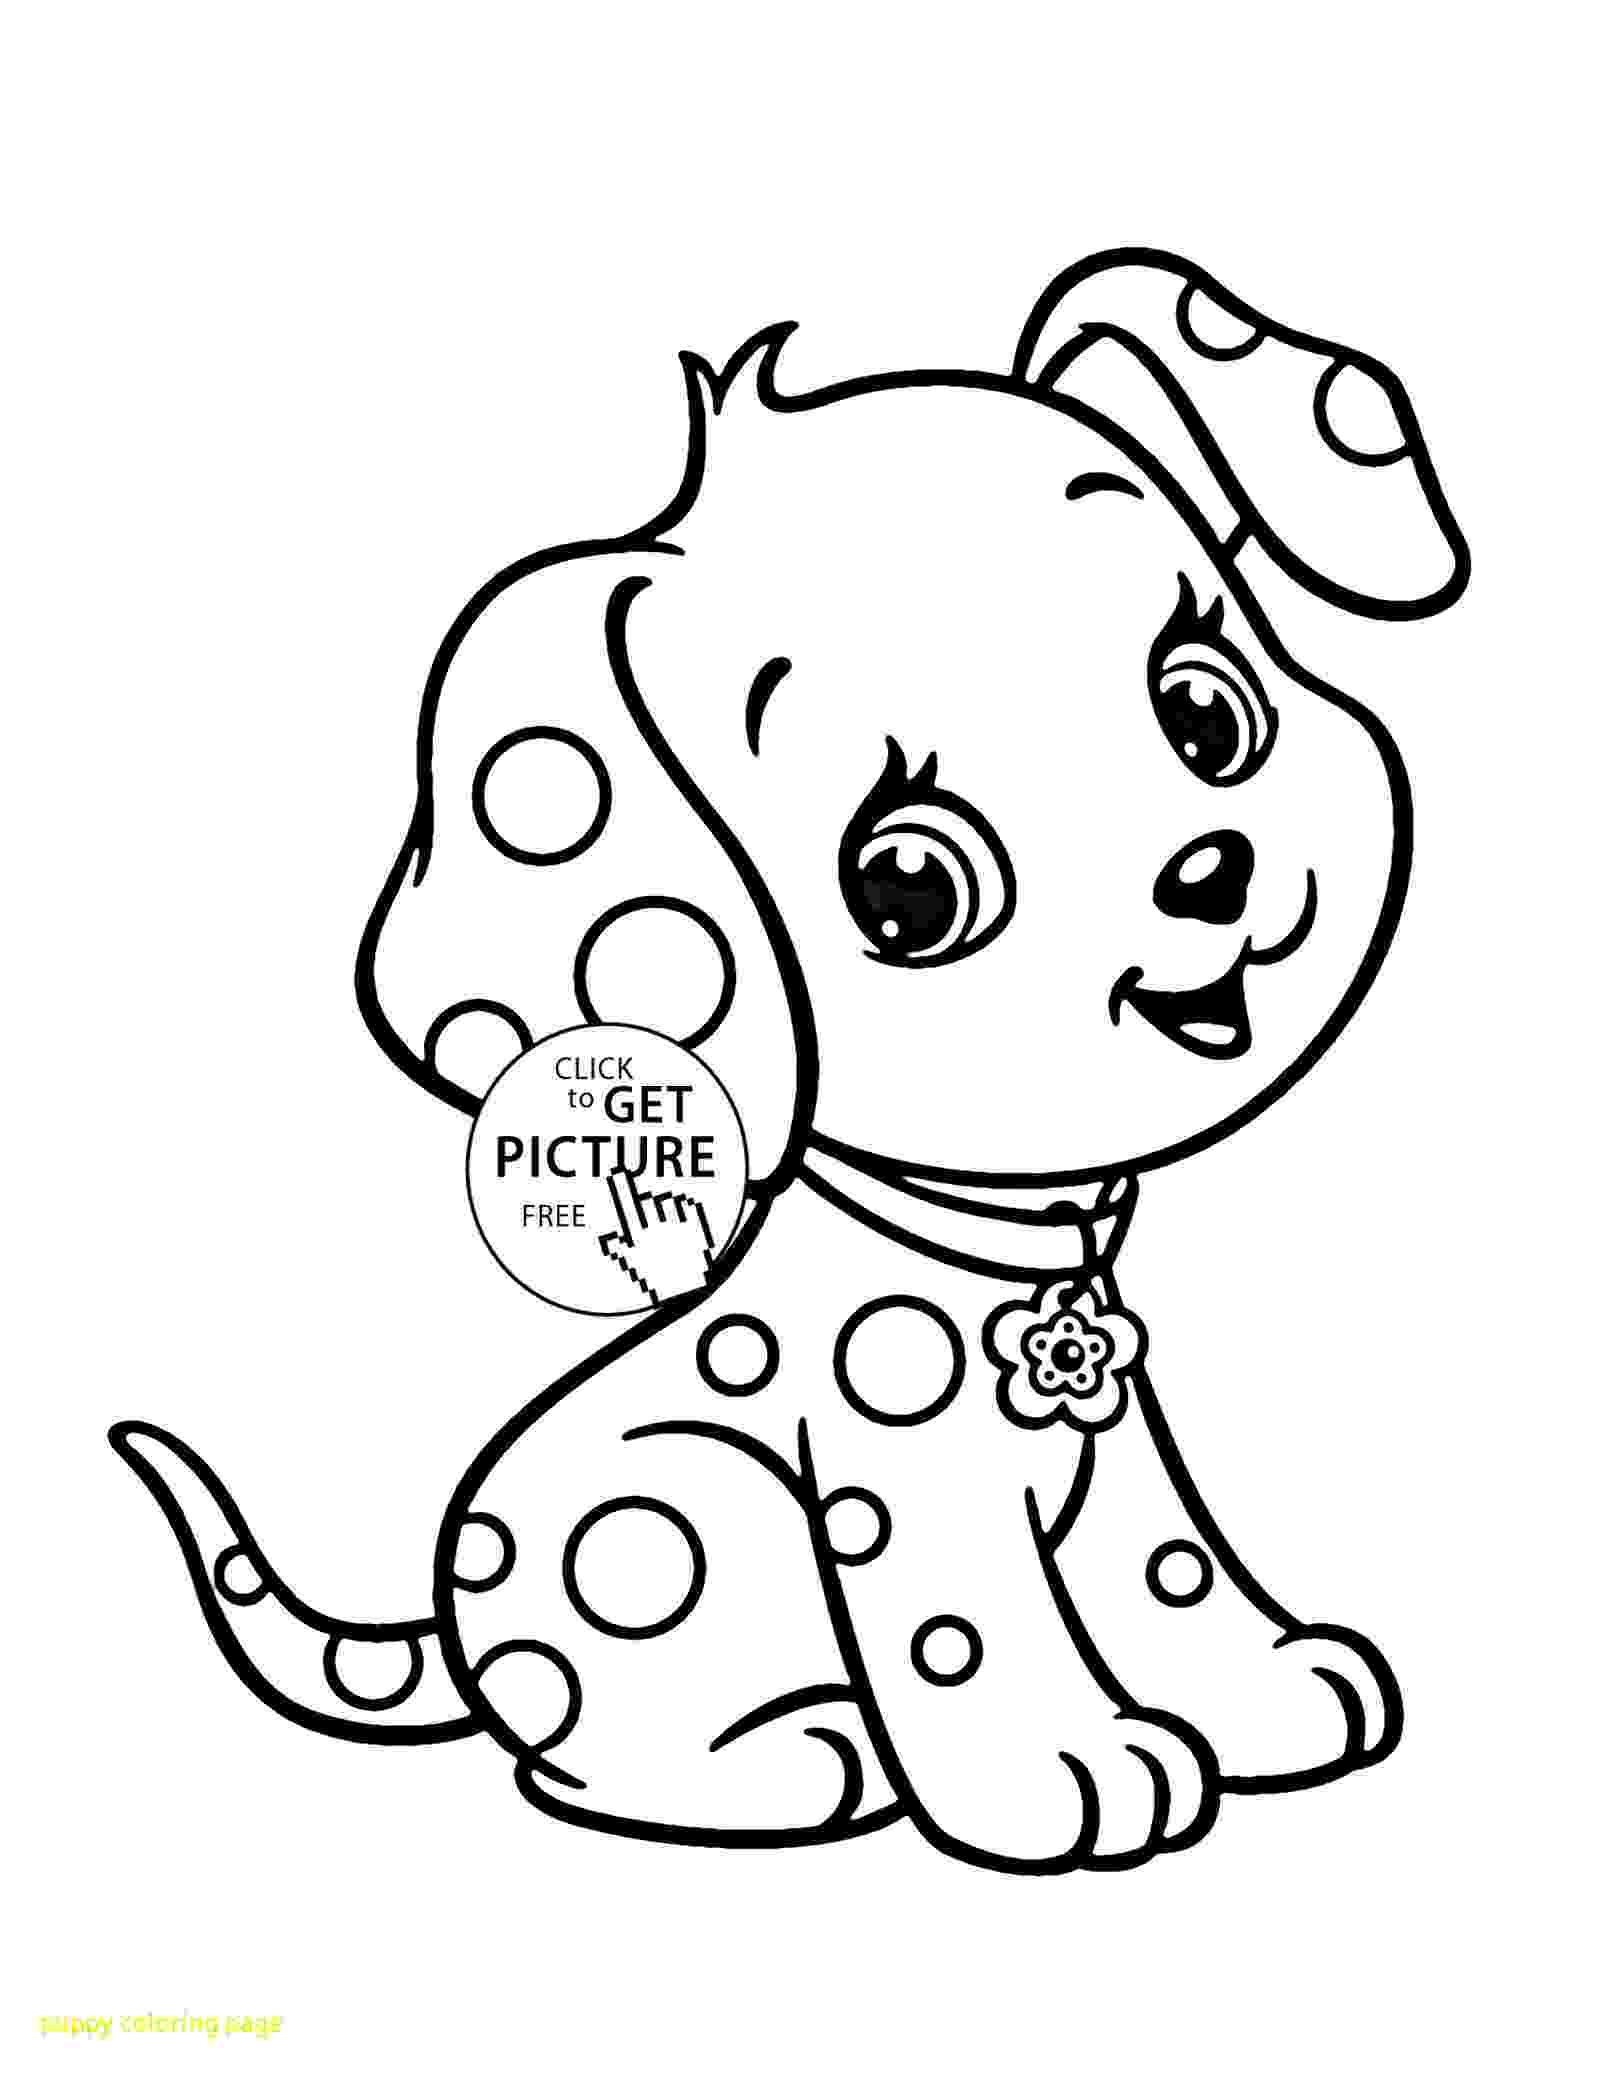 princess puppy coloring pages princess and puppy colouring page puppy pages princess coloring